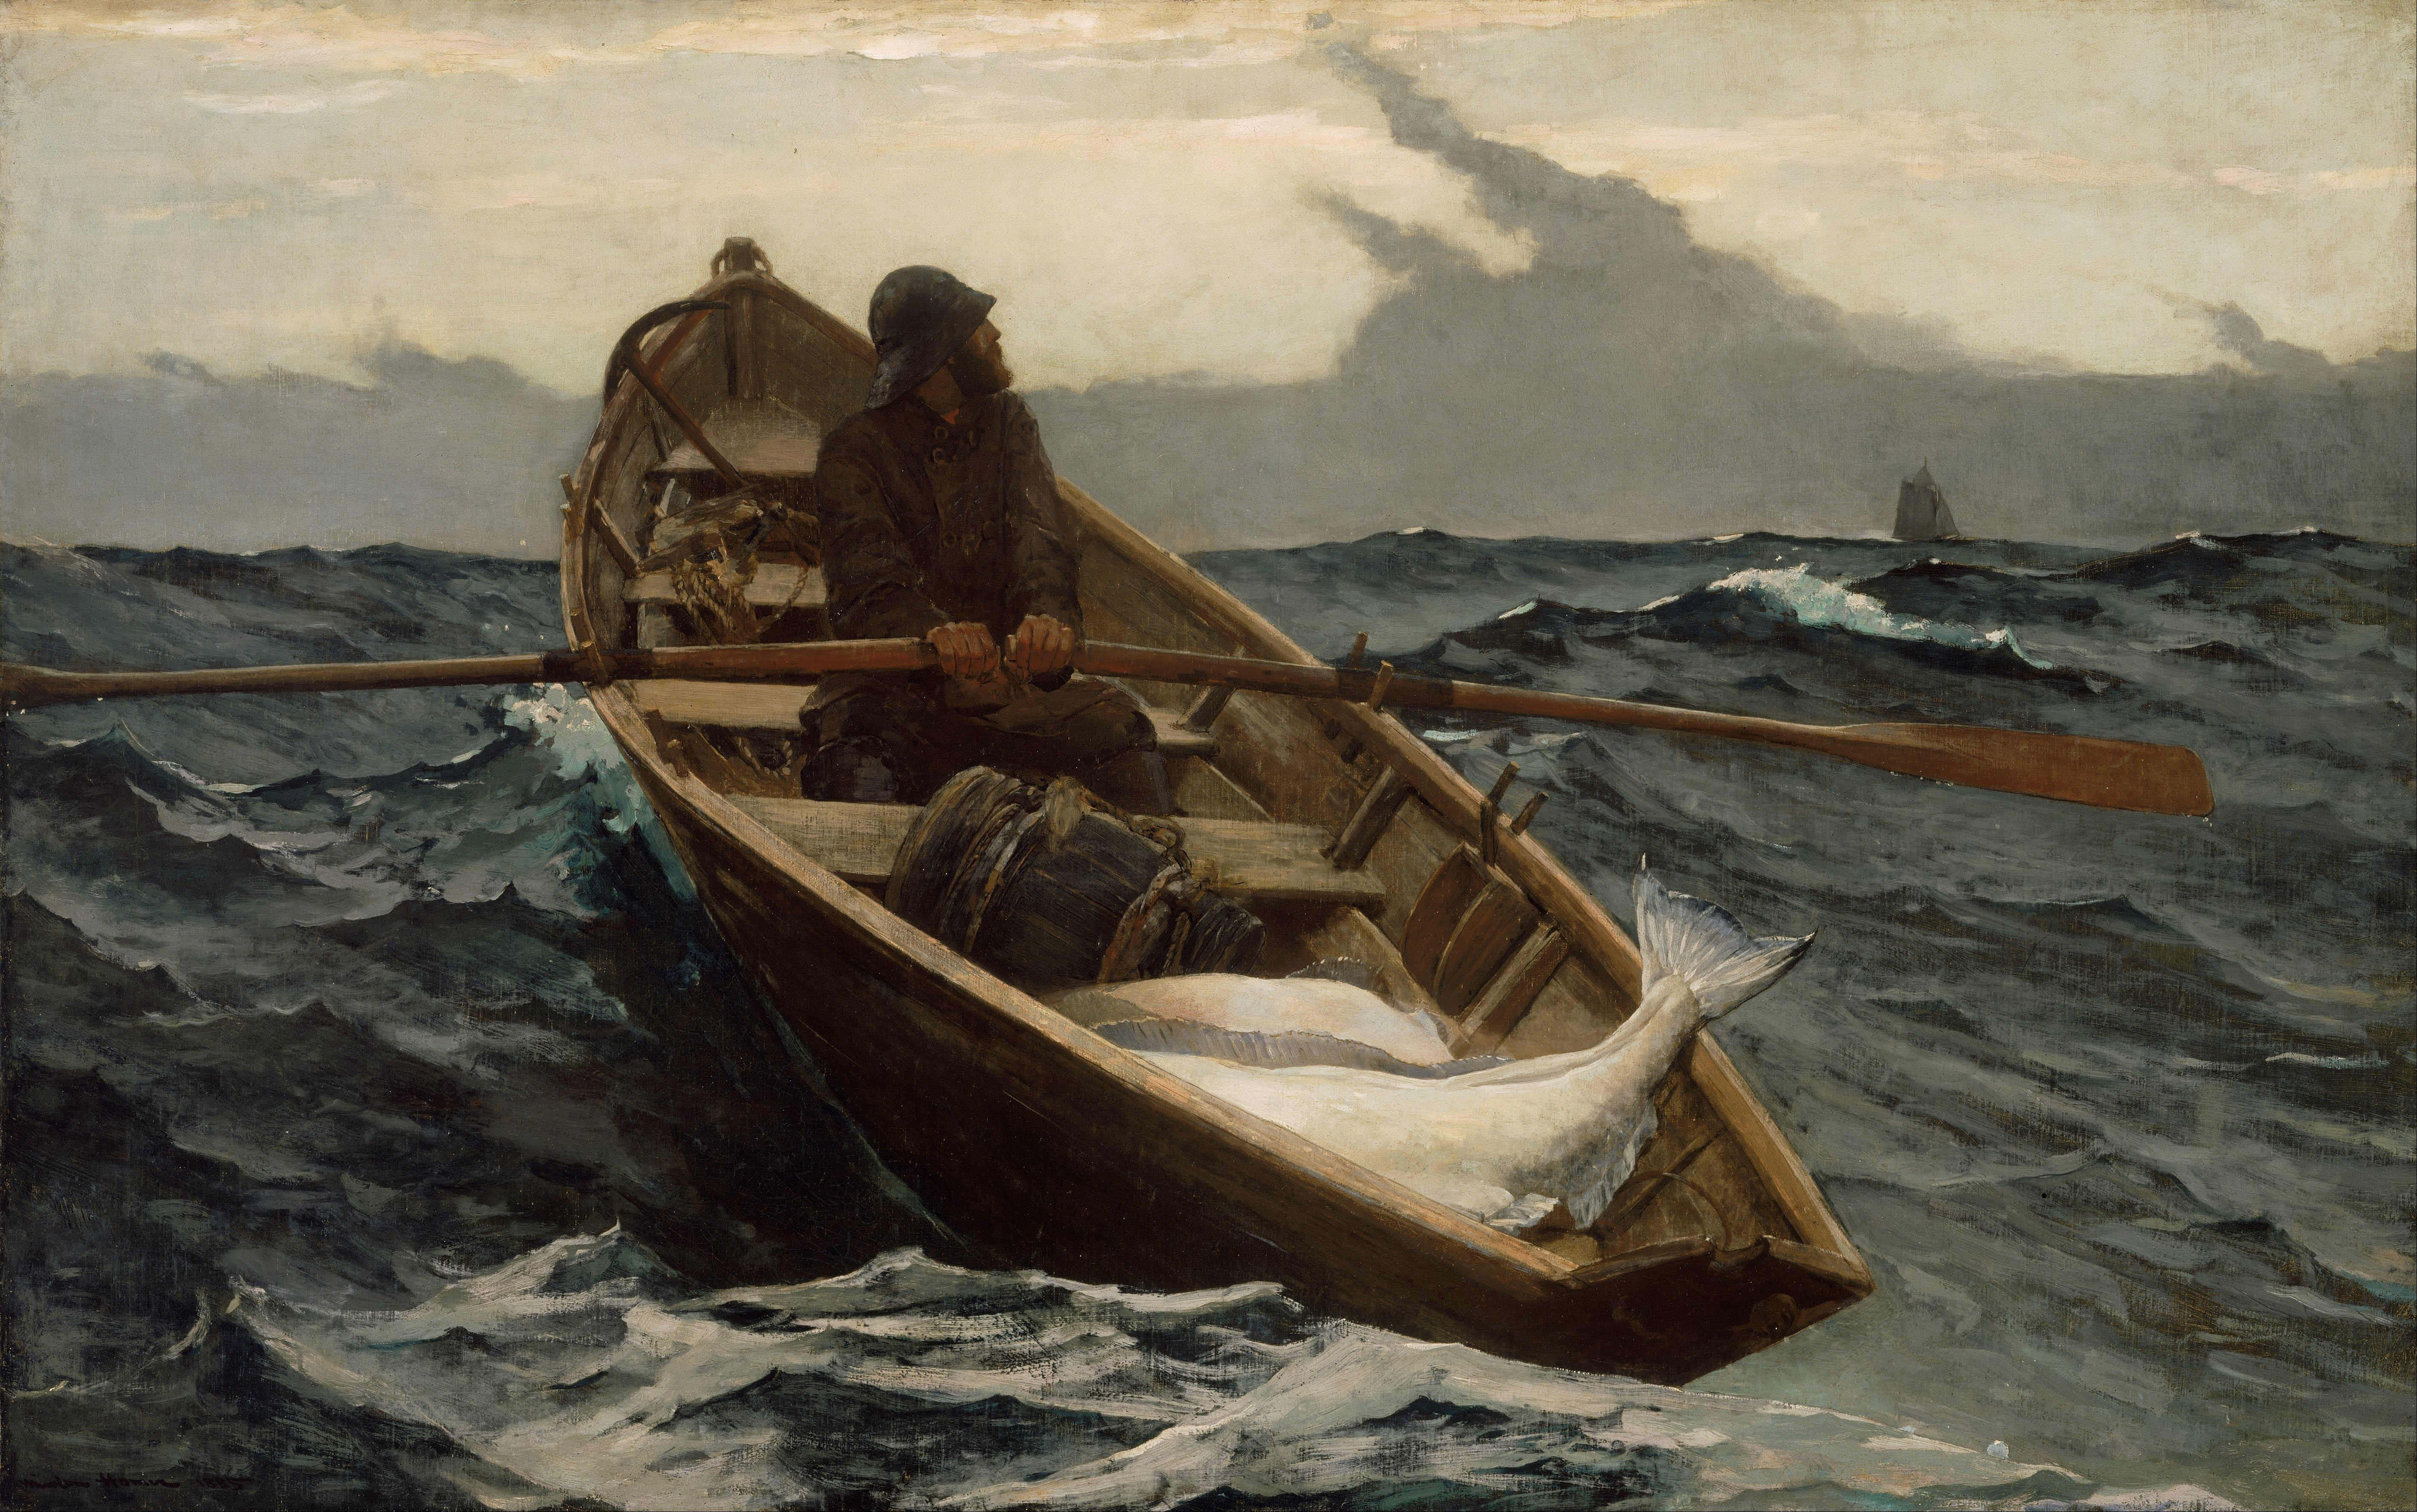 Watercolor artists directory wiki - Winslow Homer The Fog Warning Watercolor 1885 Museum Of Fine Arts Boston